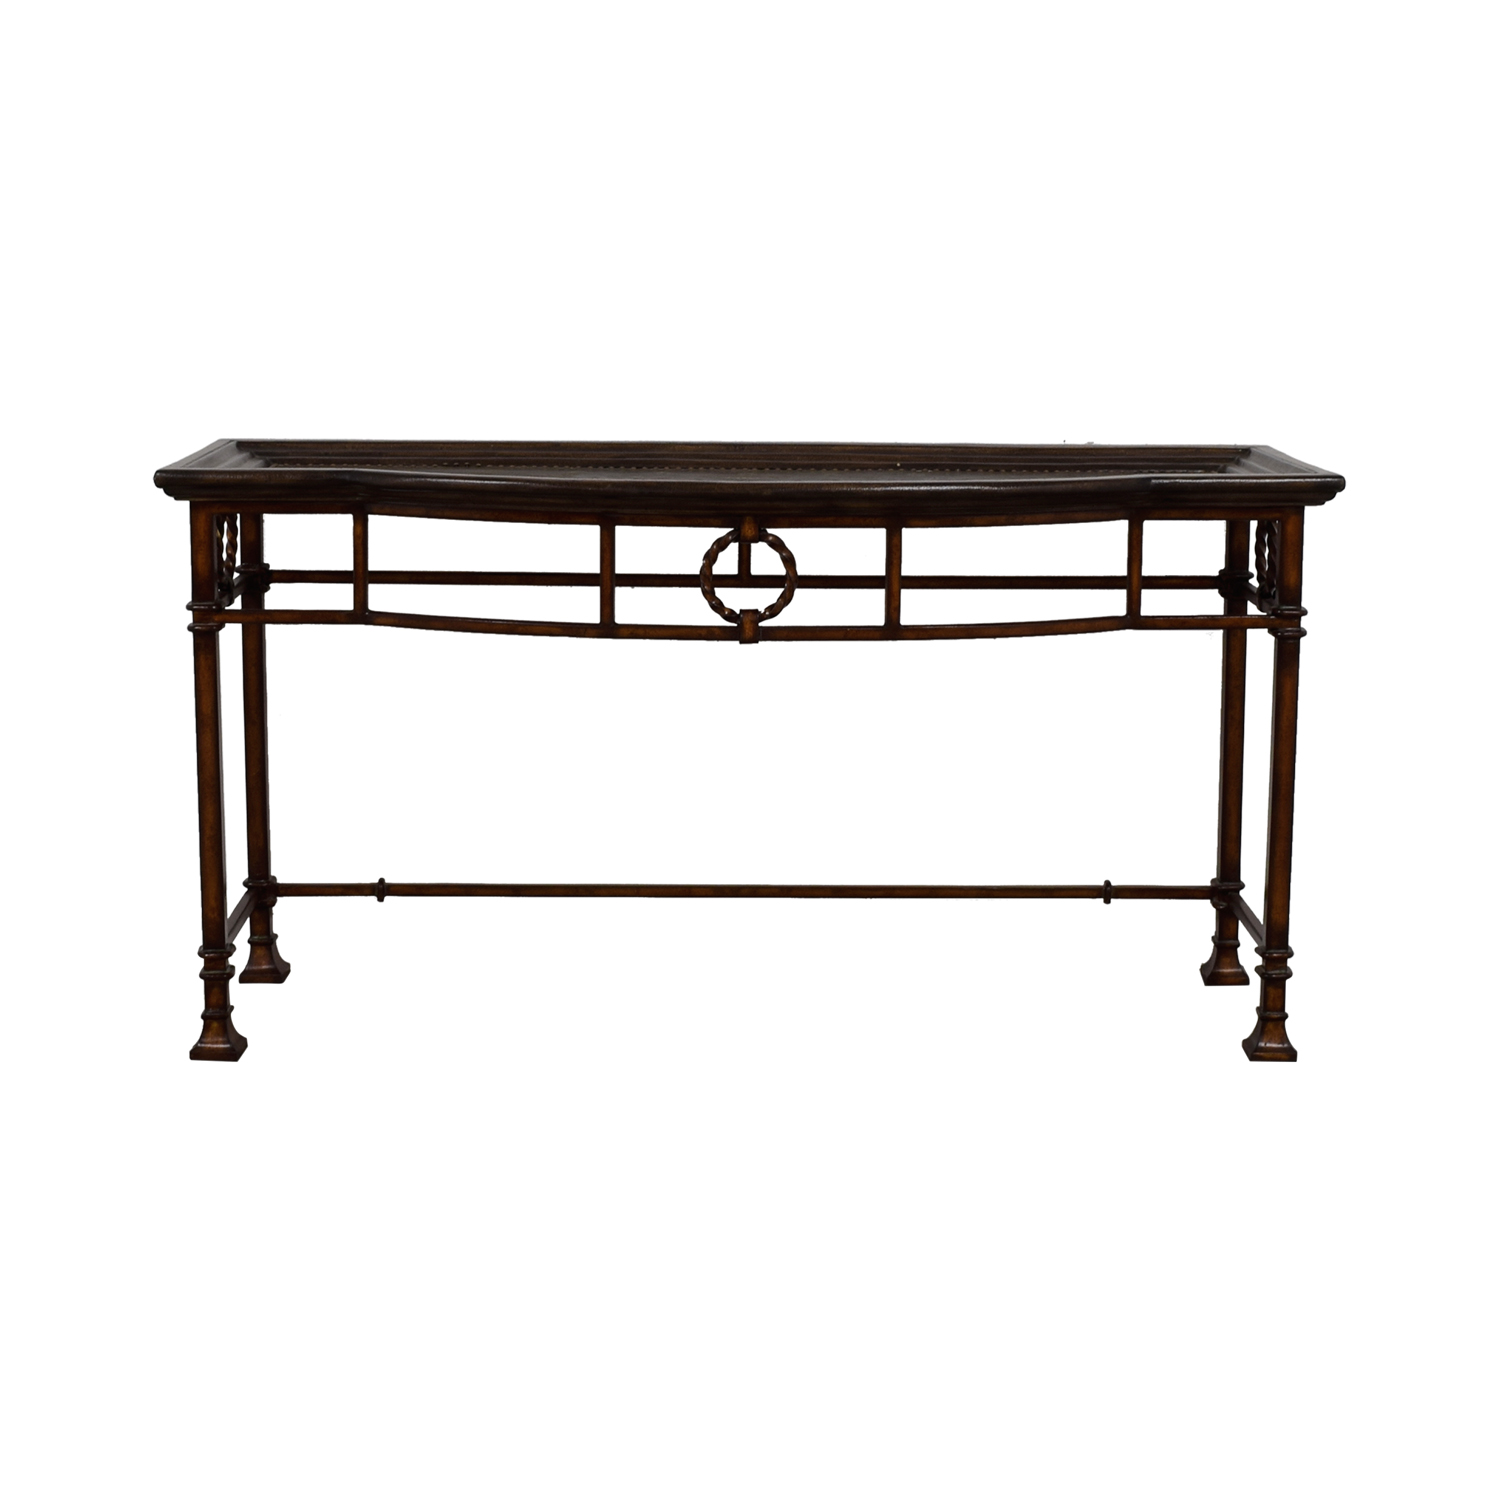 Carved Wood Console Table / Utility Tables